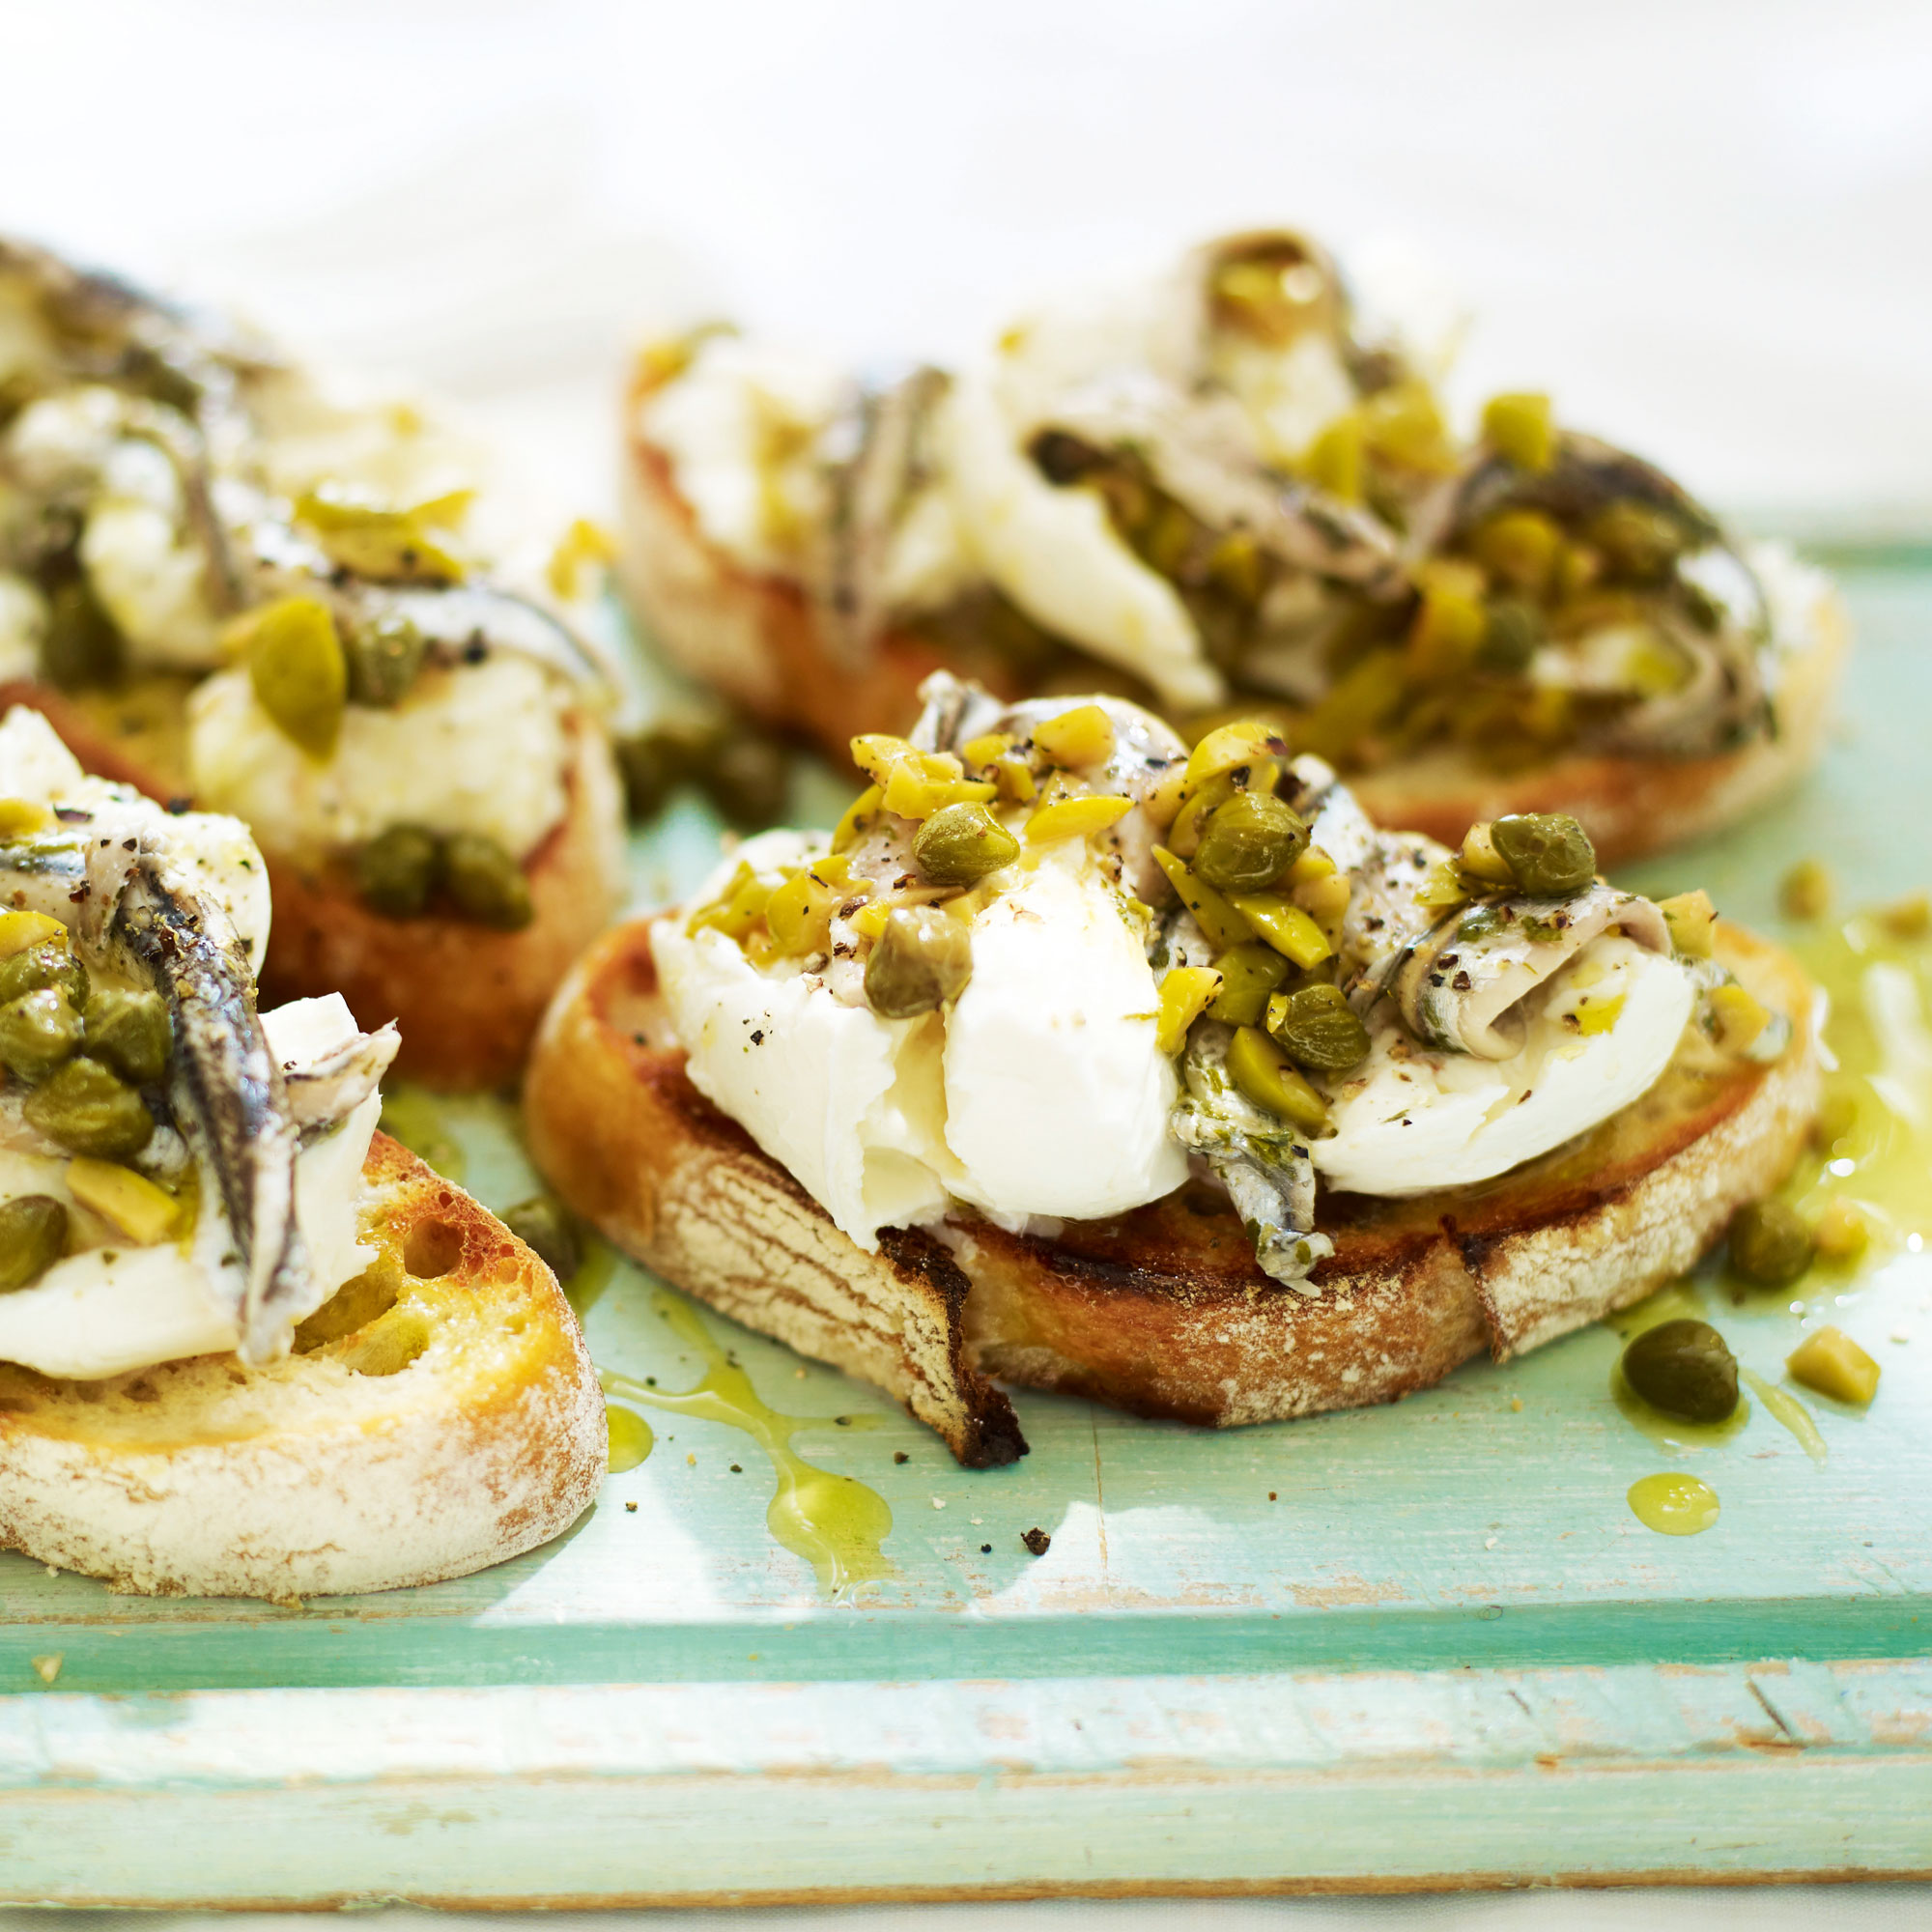 Buffalo Mozzarella With Anchovies Olives And Capers On Sourdough Lunch Recipes Woman Home